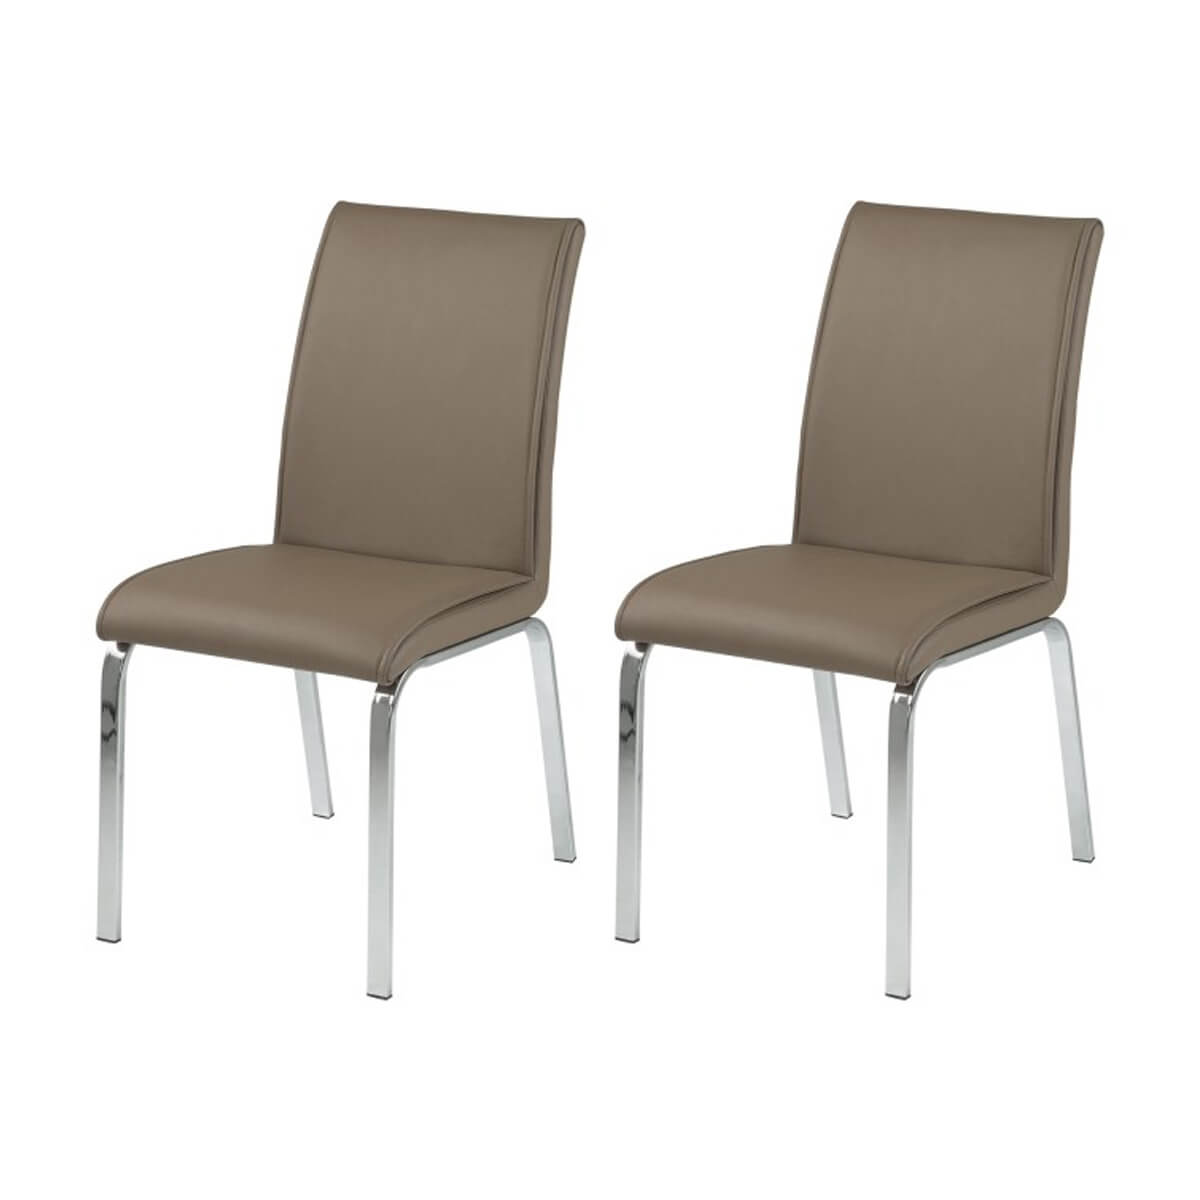 Taupe Dining Chairs Leonora Taupe Faux Leather Dining Chairs Dining Chairs